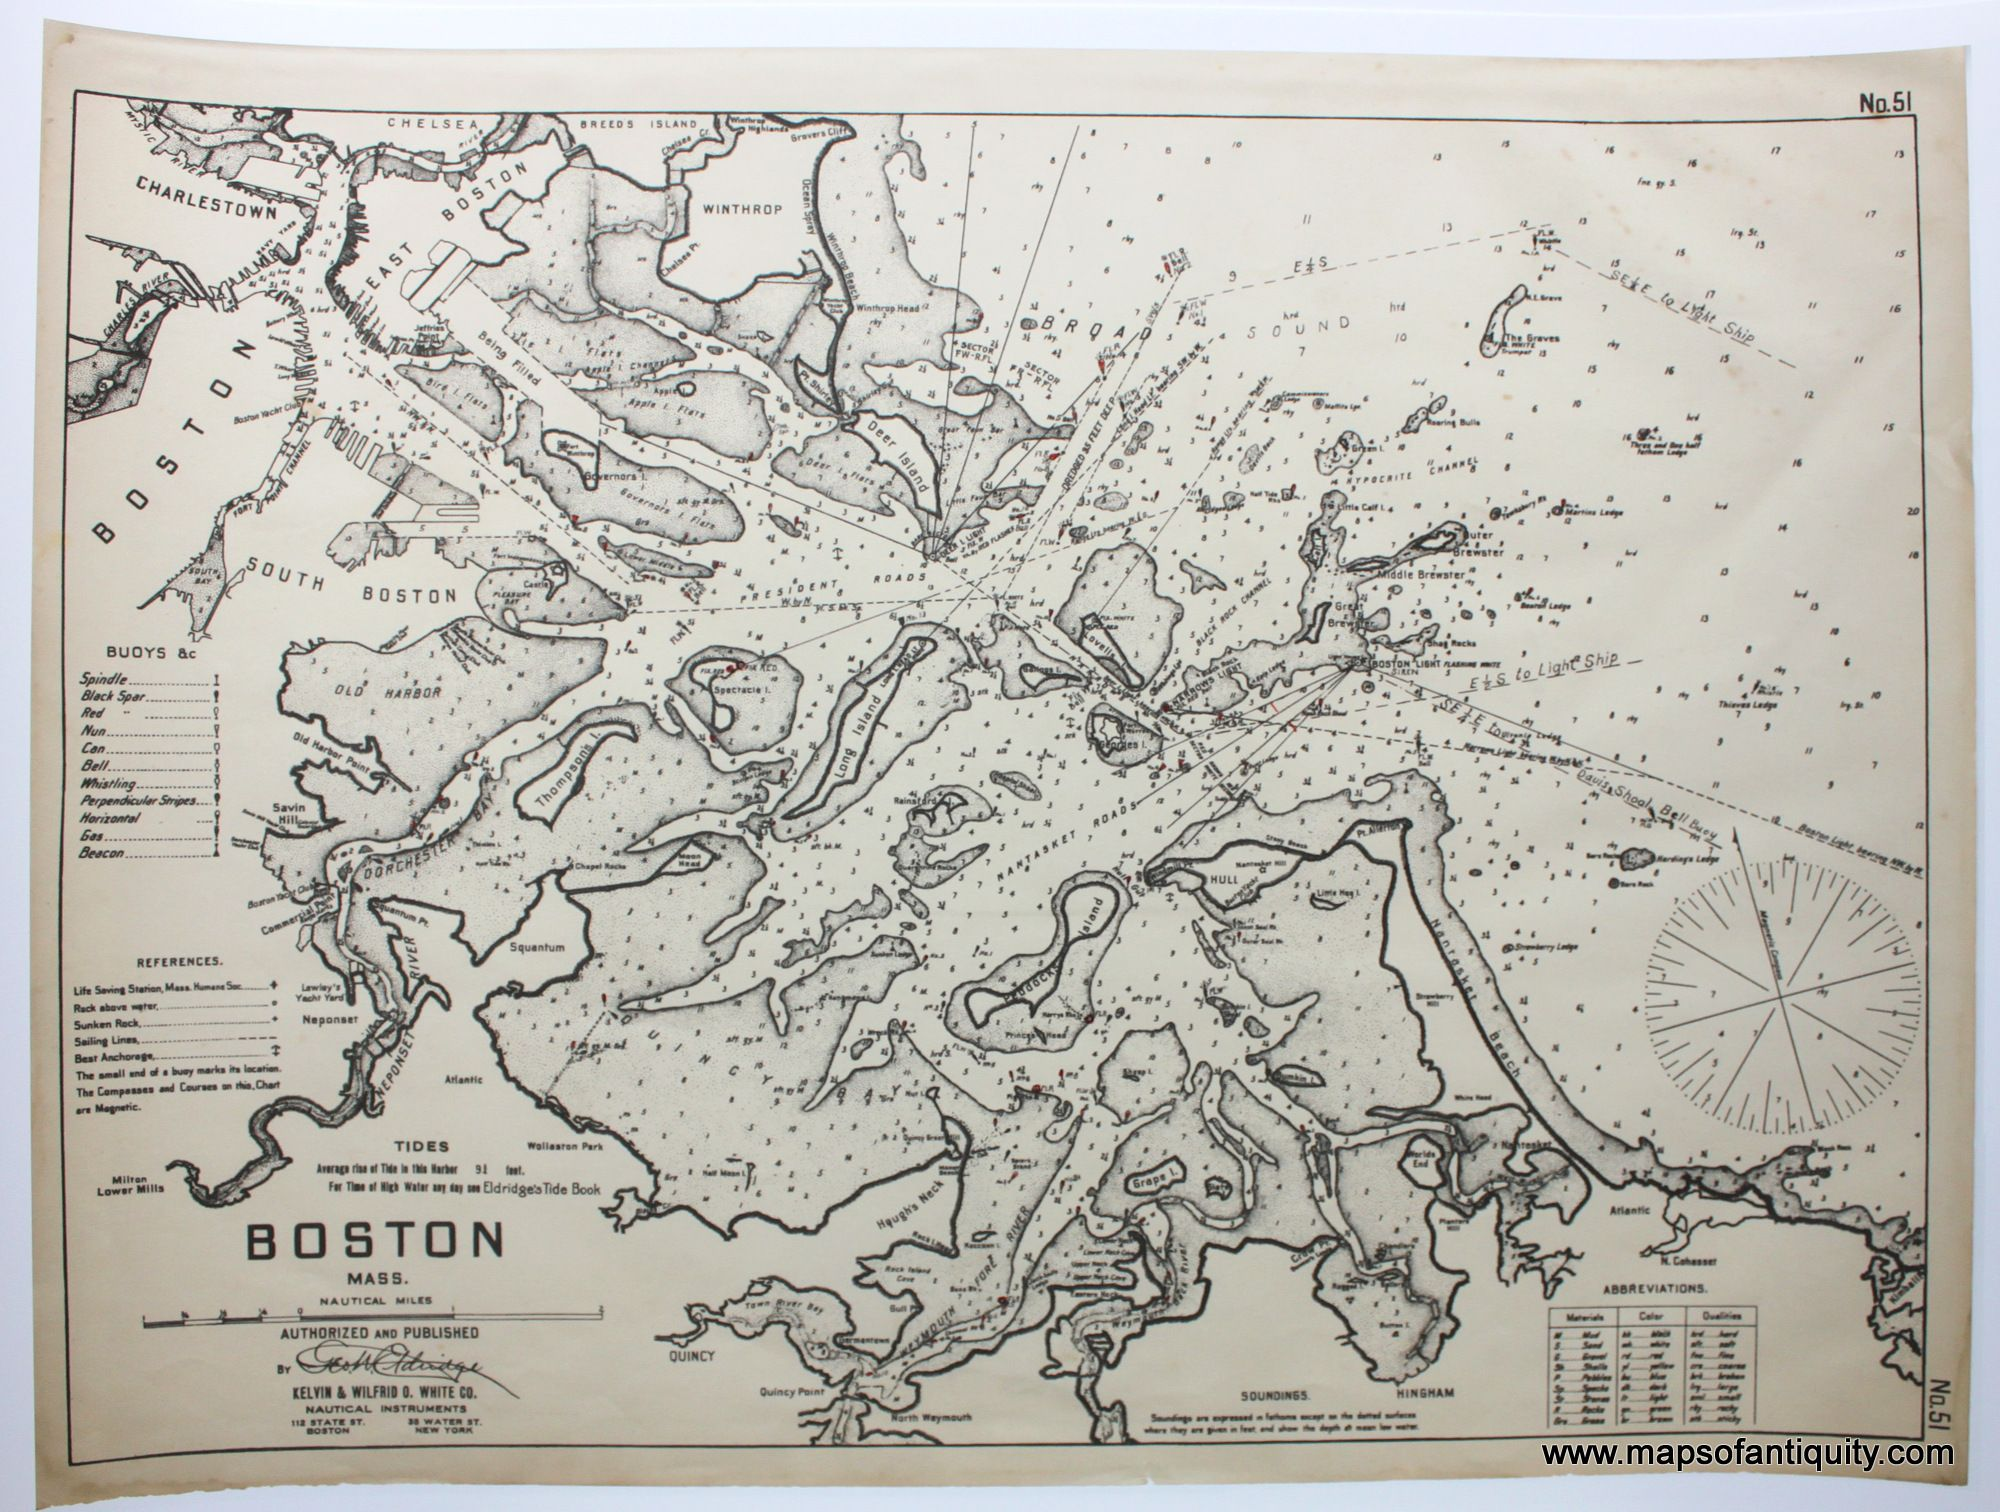 Boston Reproduction Antique Maps And Charts Original Vintage Rare Historical Prints Reproductions Of